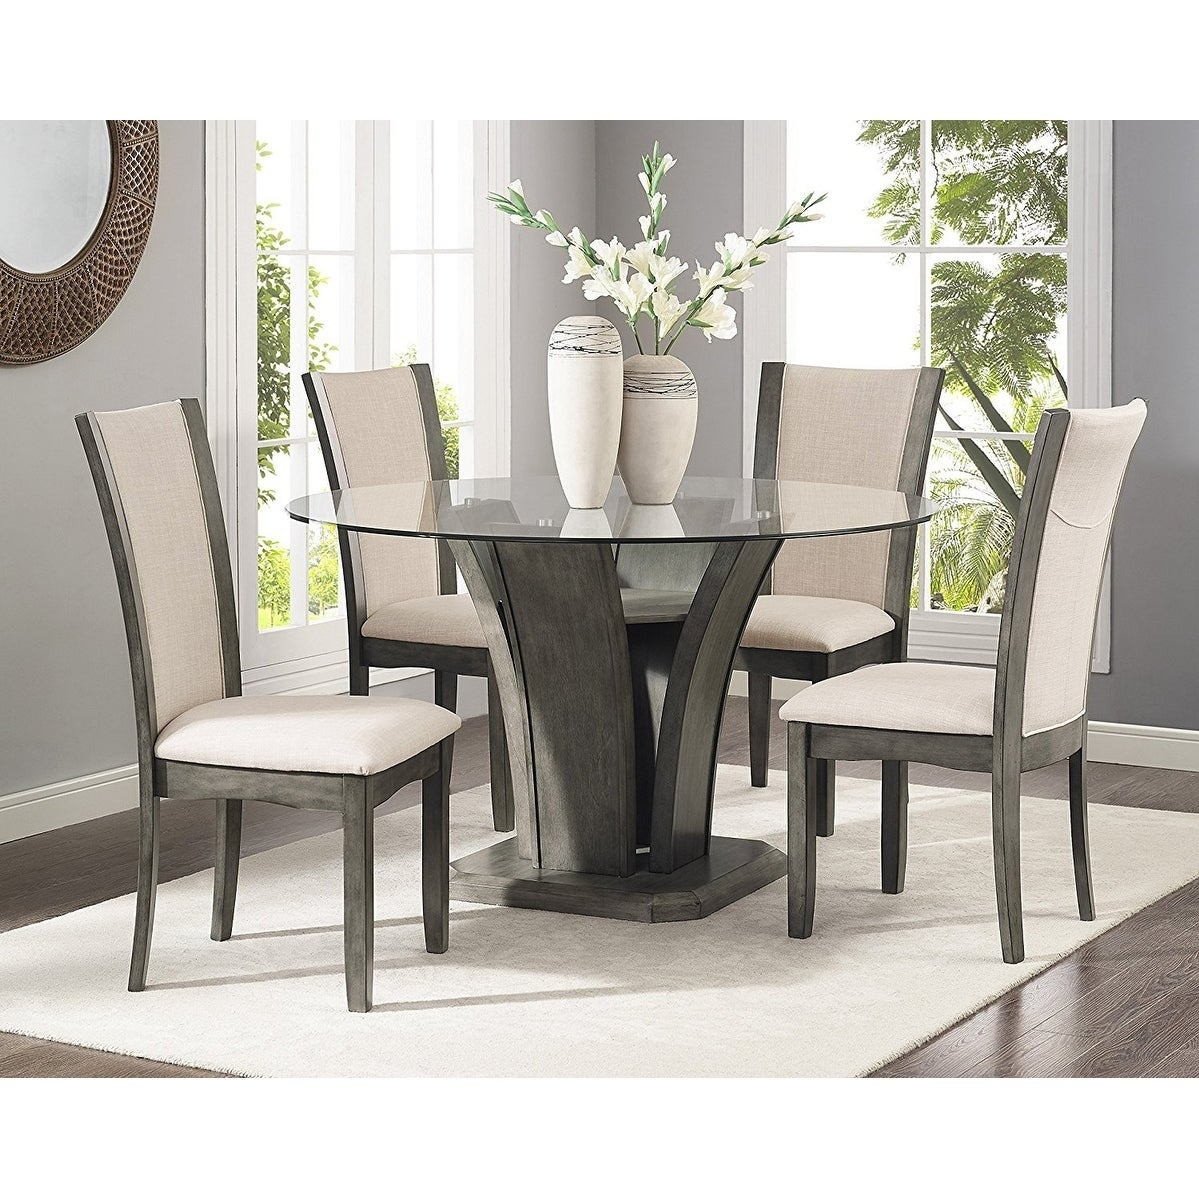 Glass Dining Table Set: Kecco Grey 5-Piece Glass Top Dining Set, Table With 4